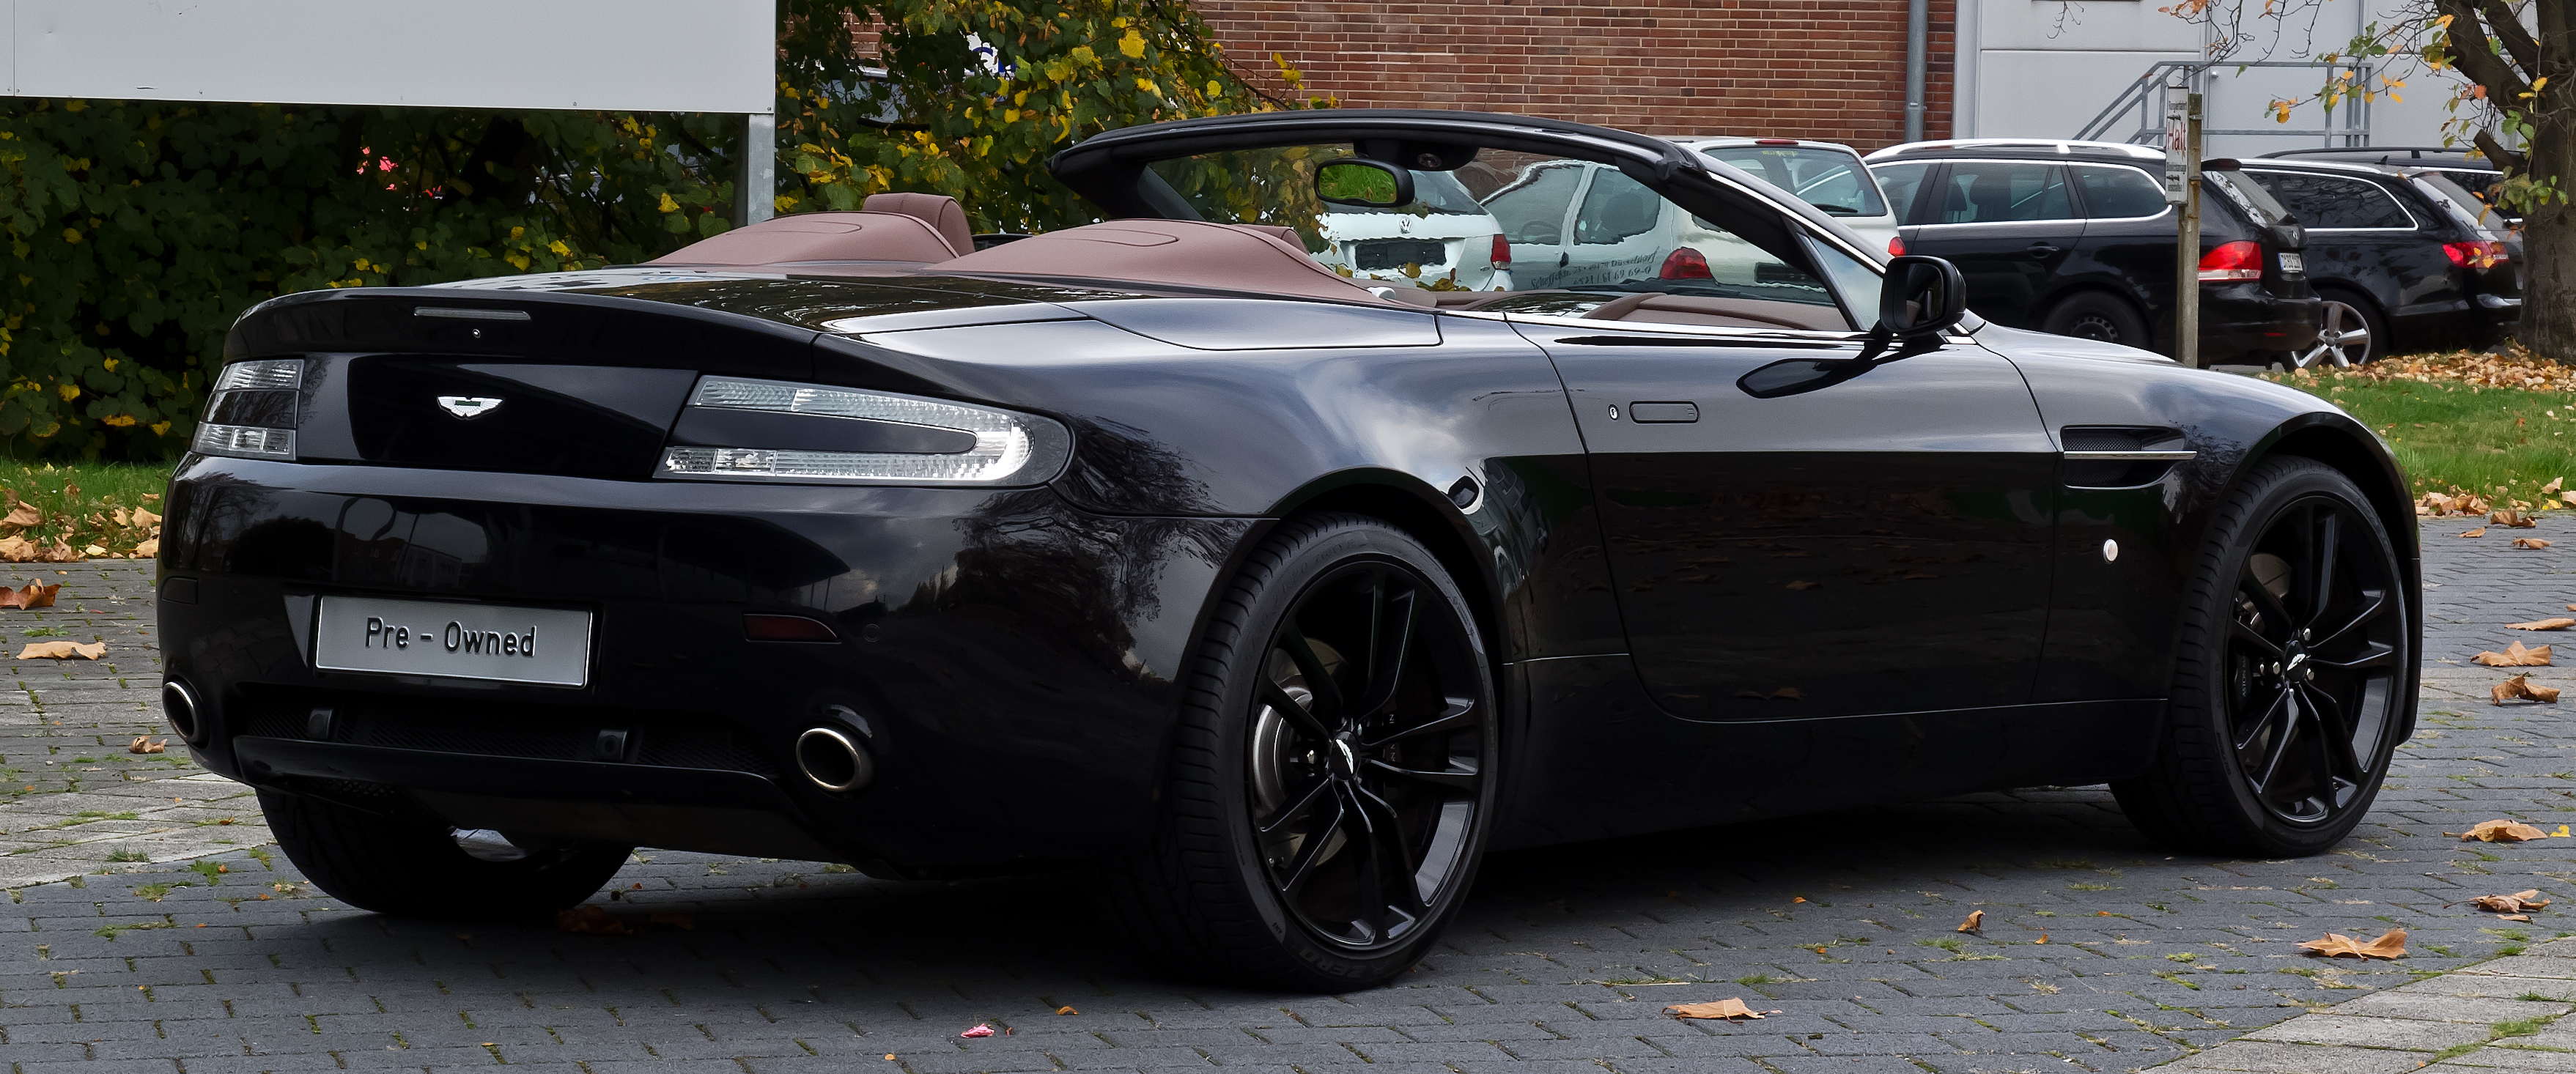 Fileaston Martin V8 Vantage Roadster Facelift Heckansicht 1